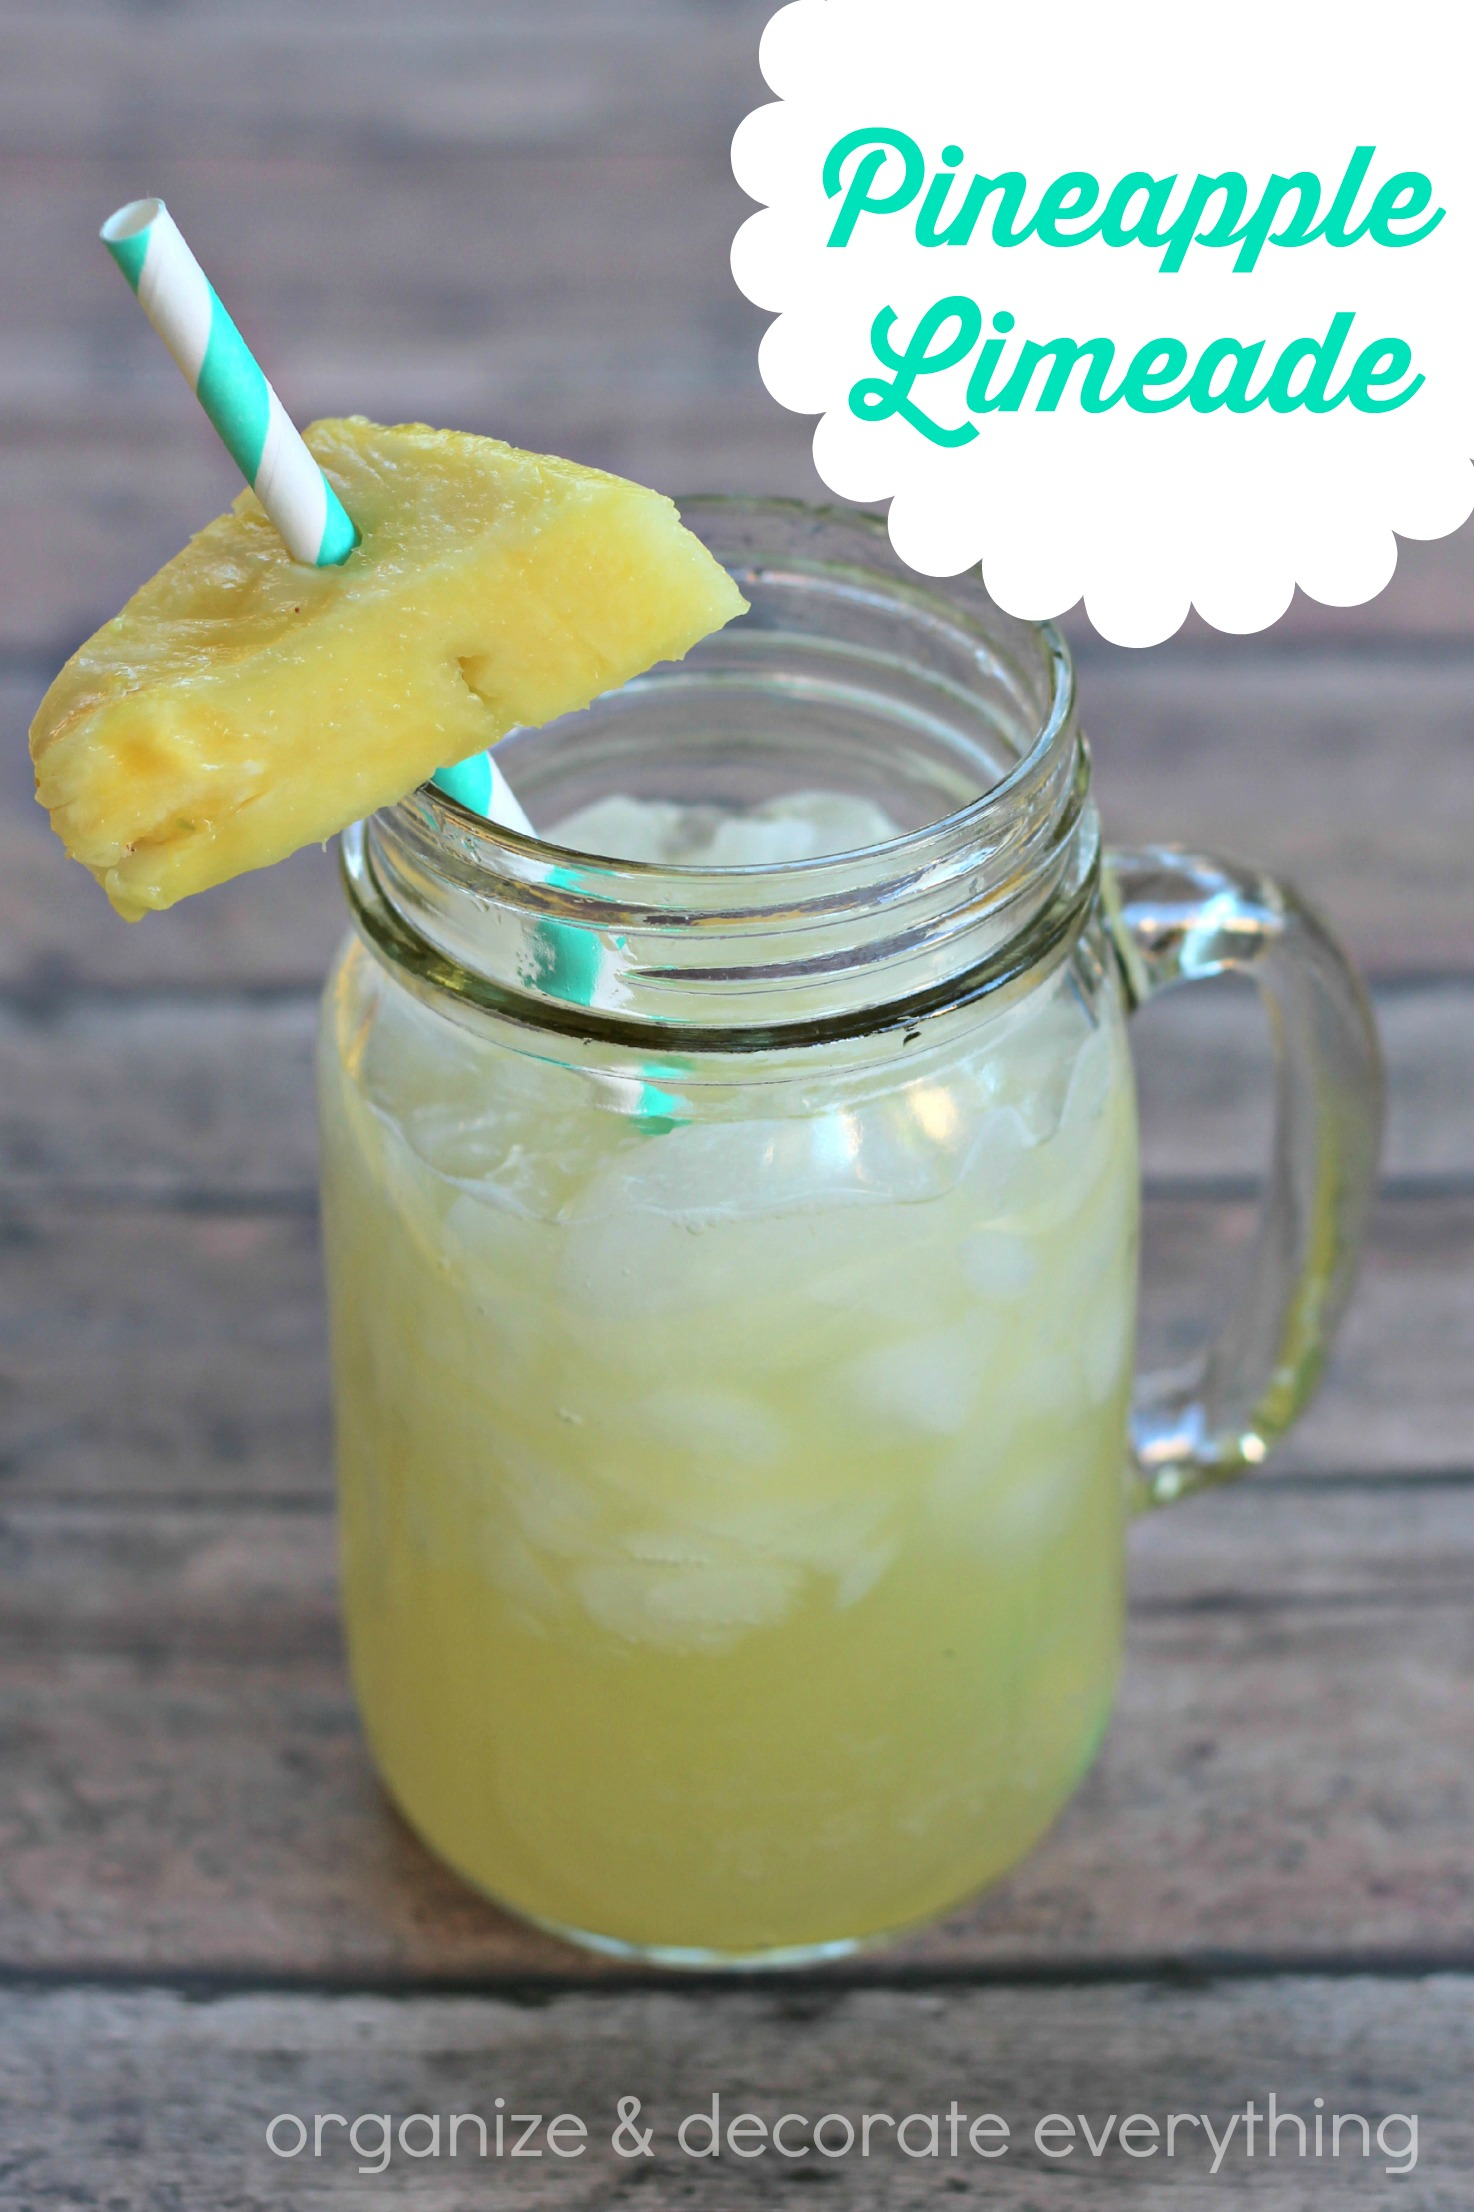 Pineapple Limeade - Organize and Decorate Everything